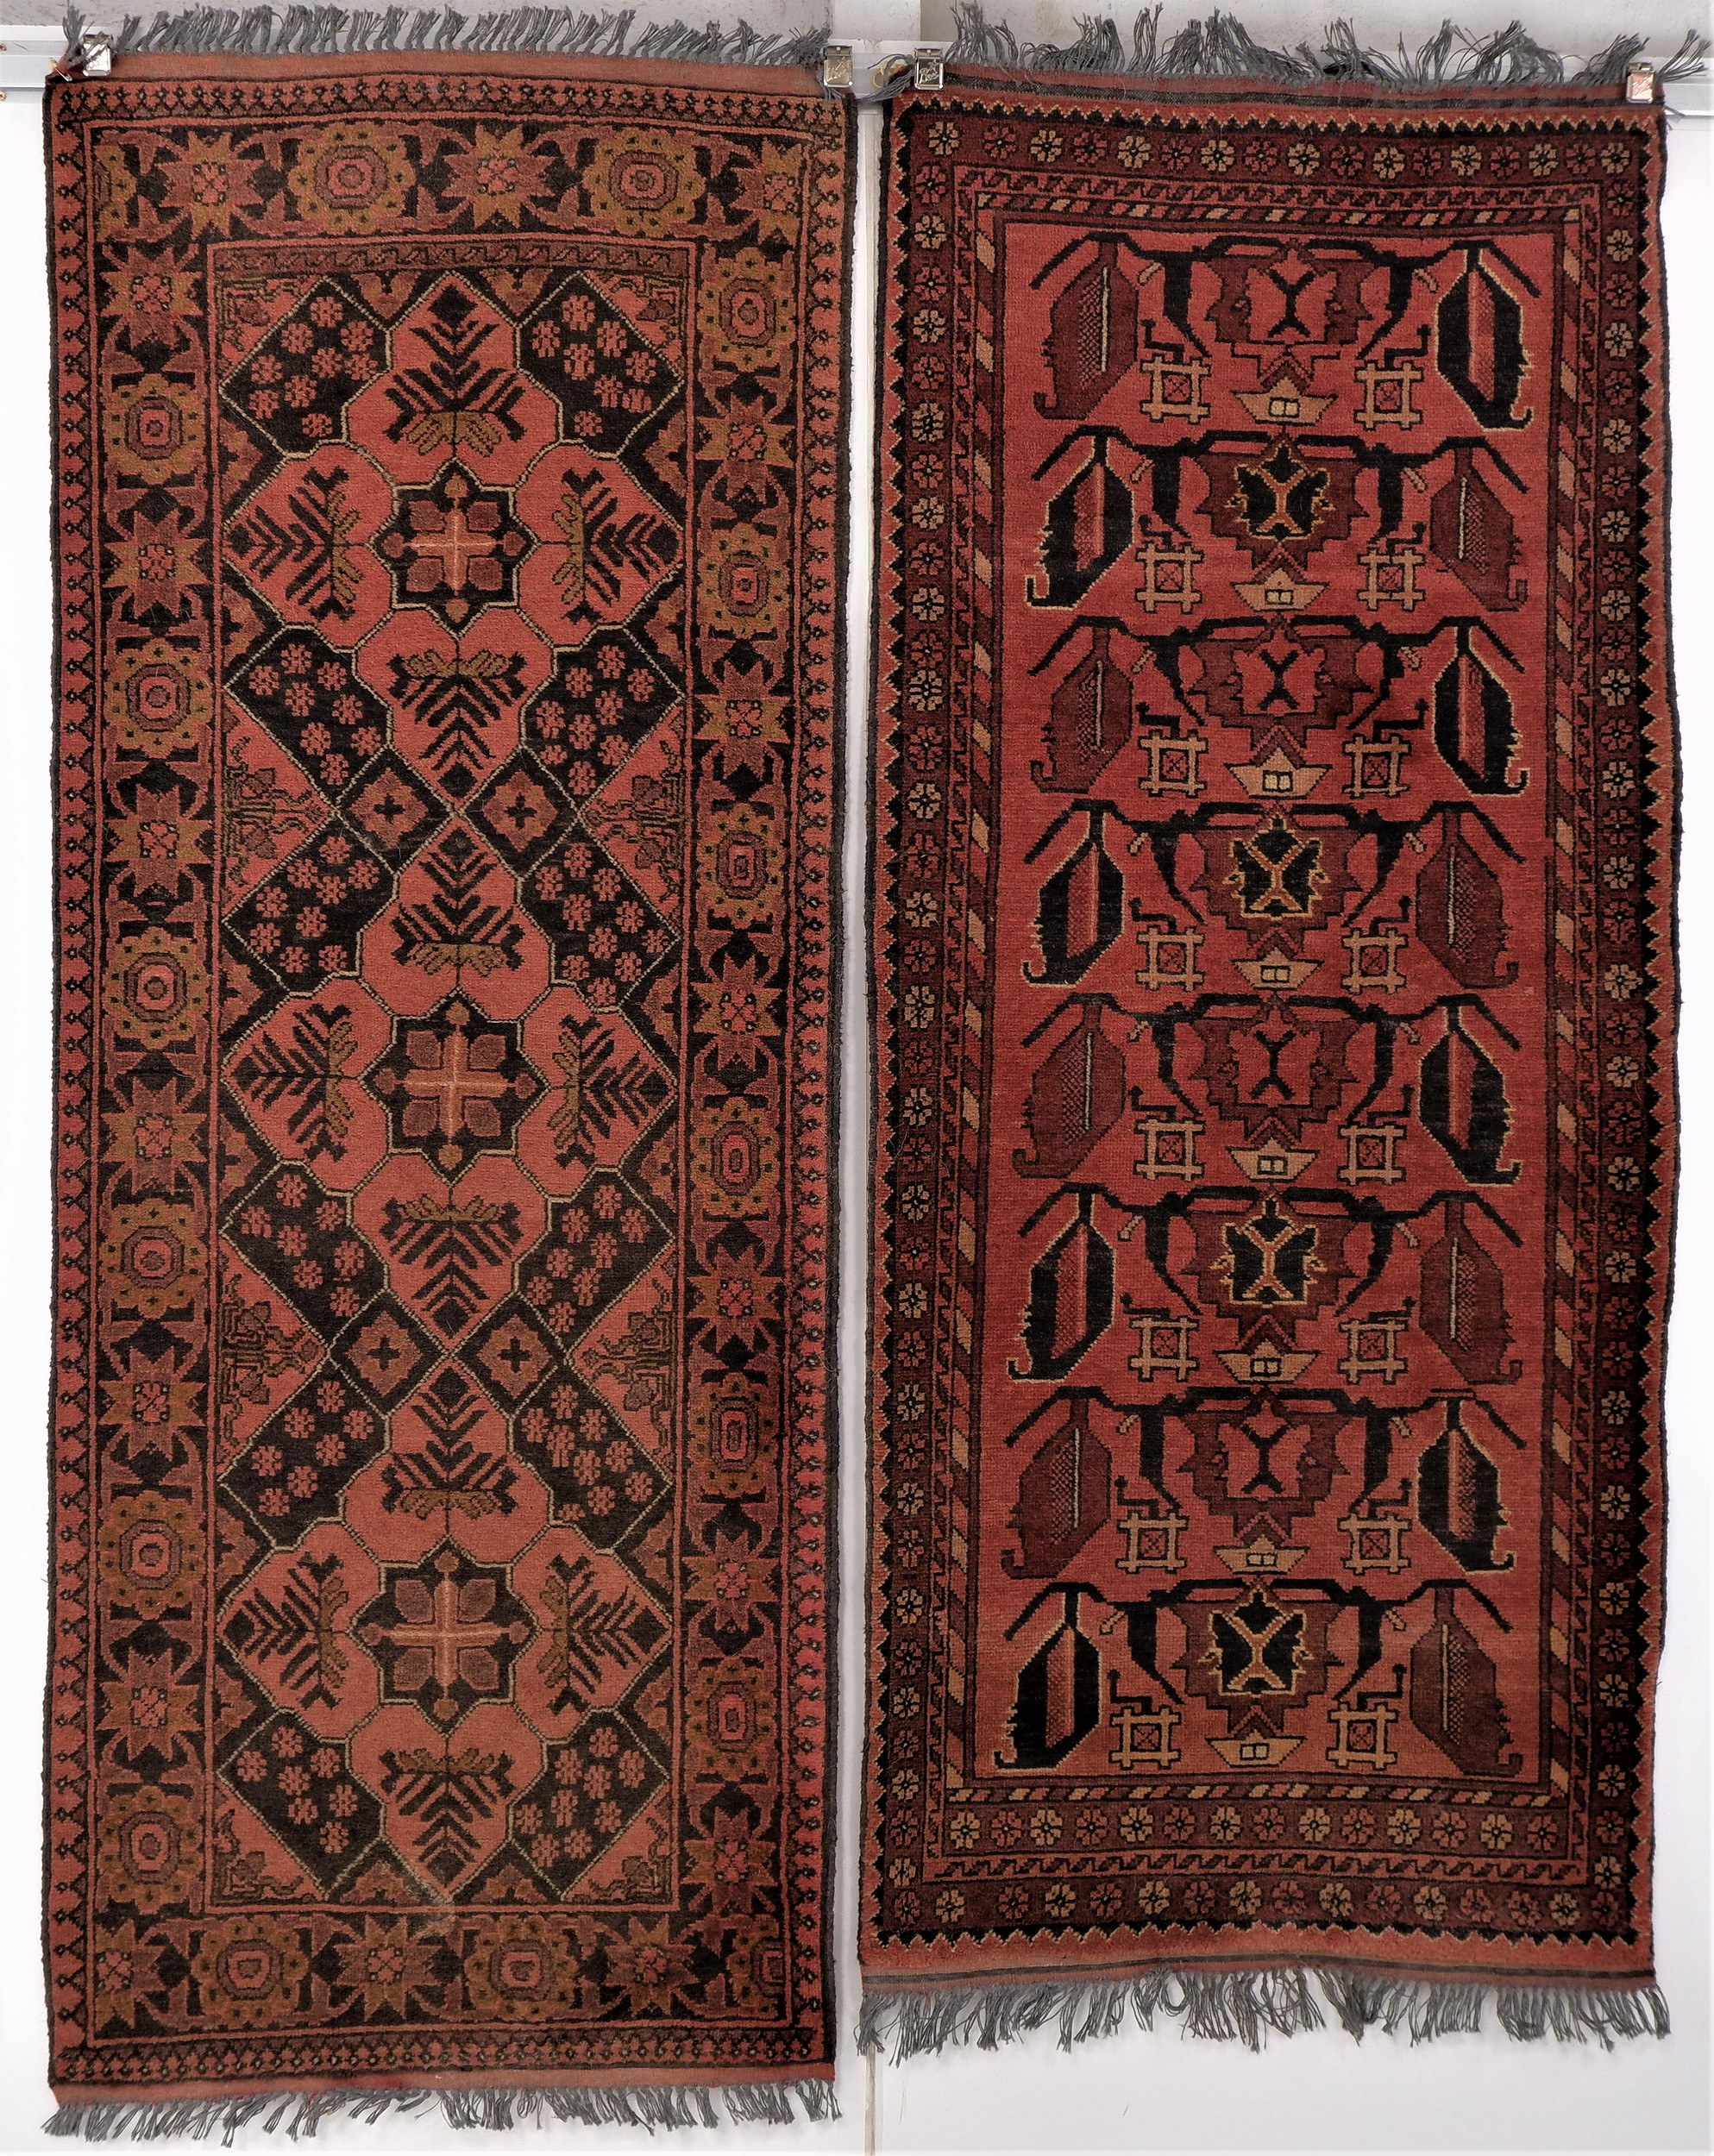 'Two Afghan Hand Knotted Wool Rugs with Khal Mohammadi Design '